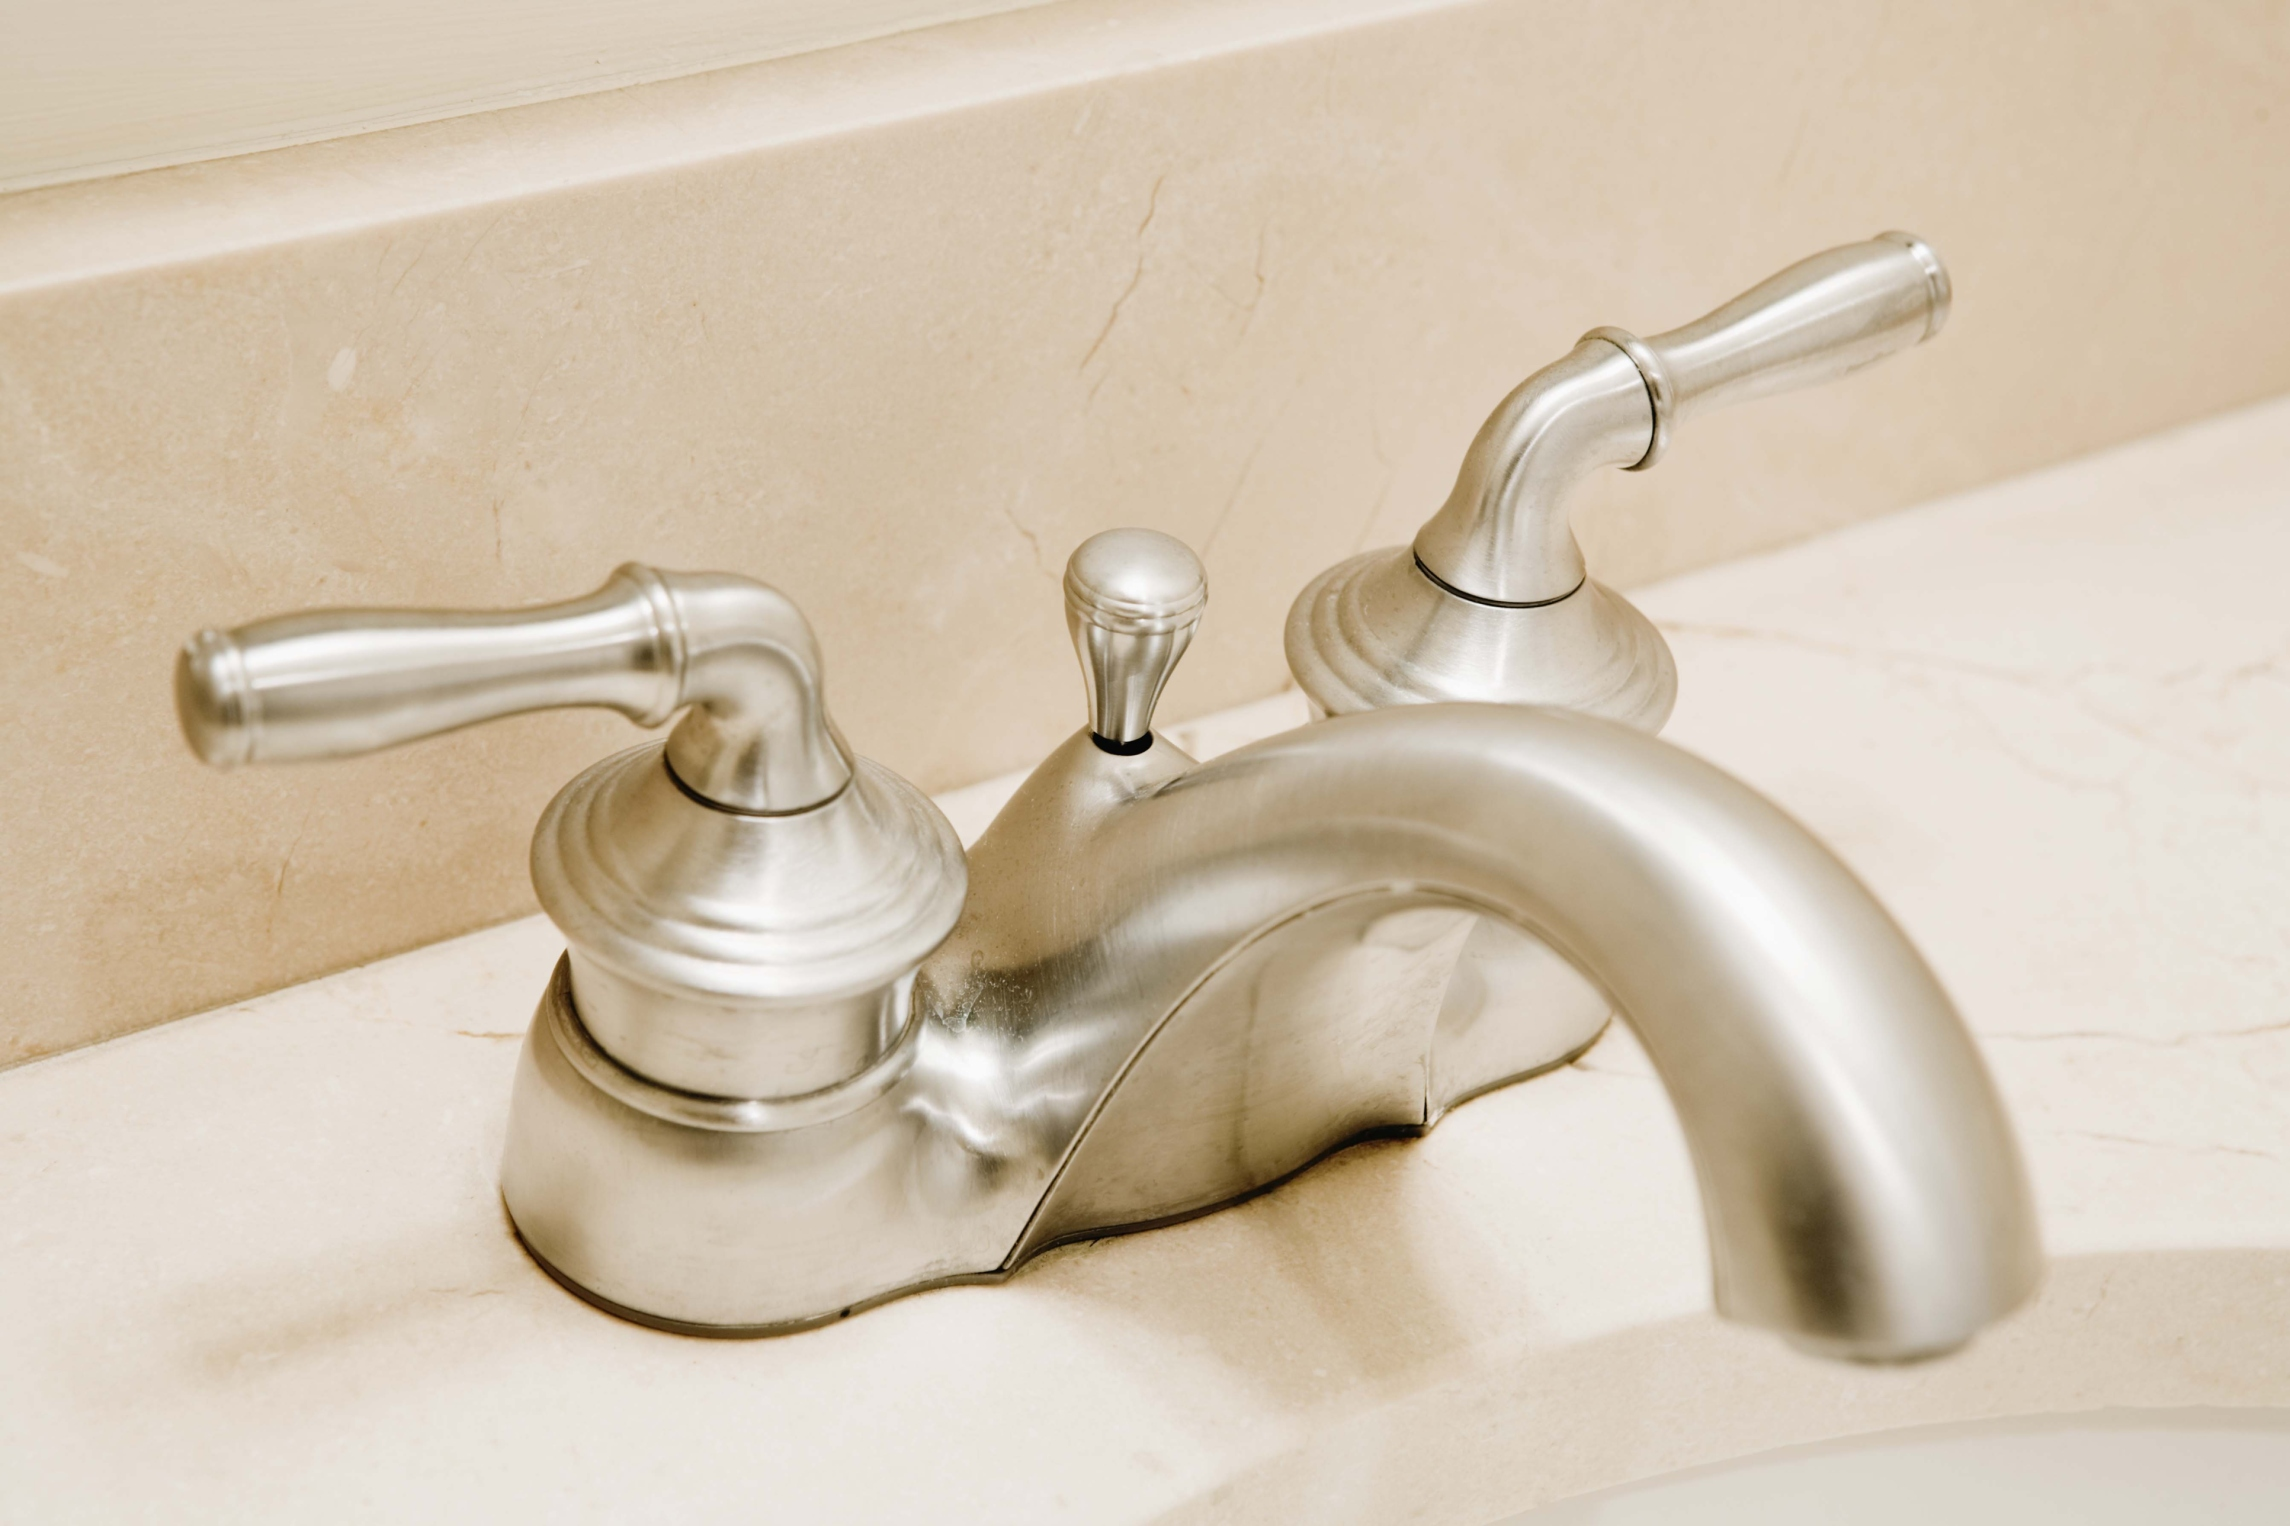 How To Locate The Water Restrictor In A Kitchen Faucet